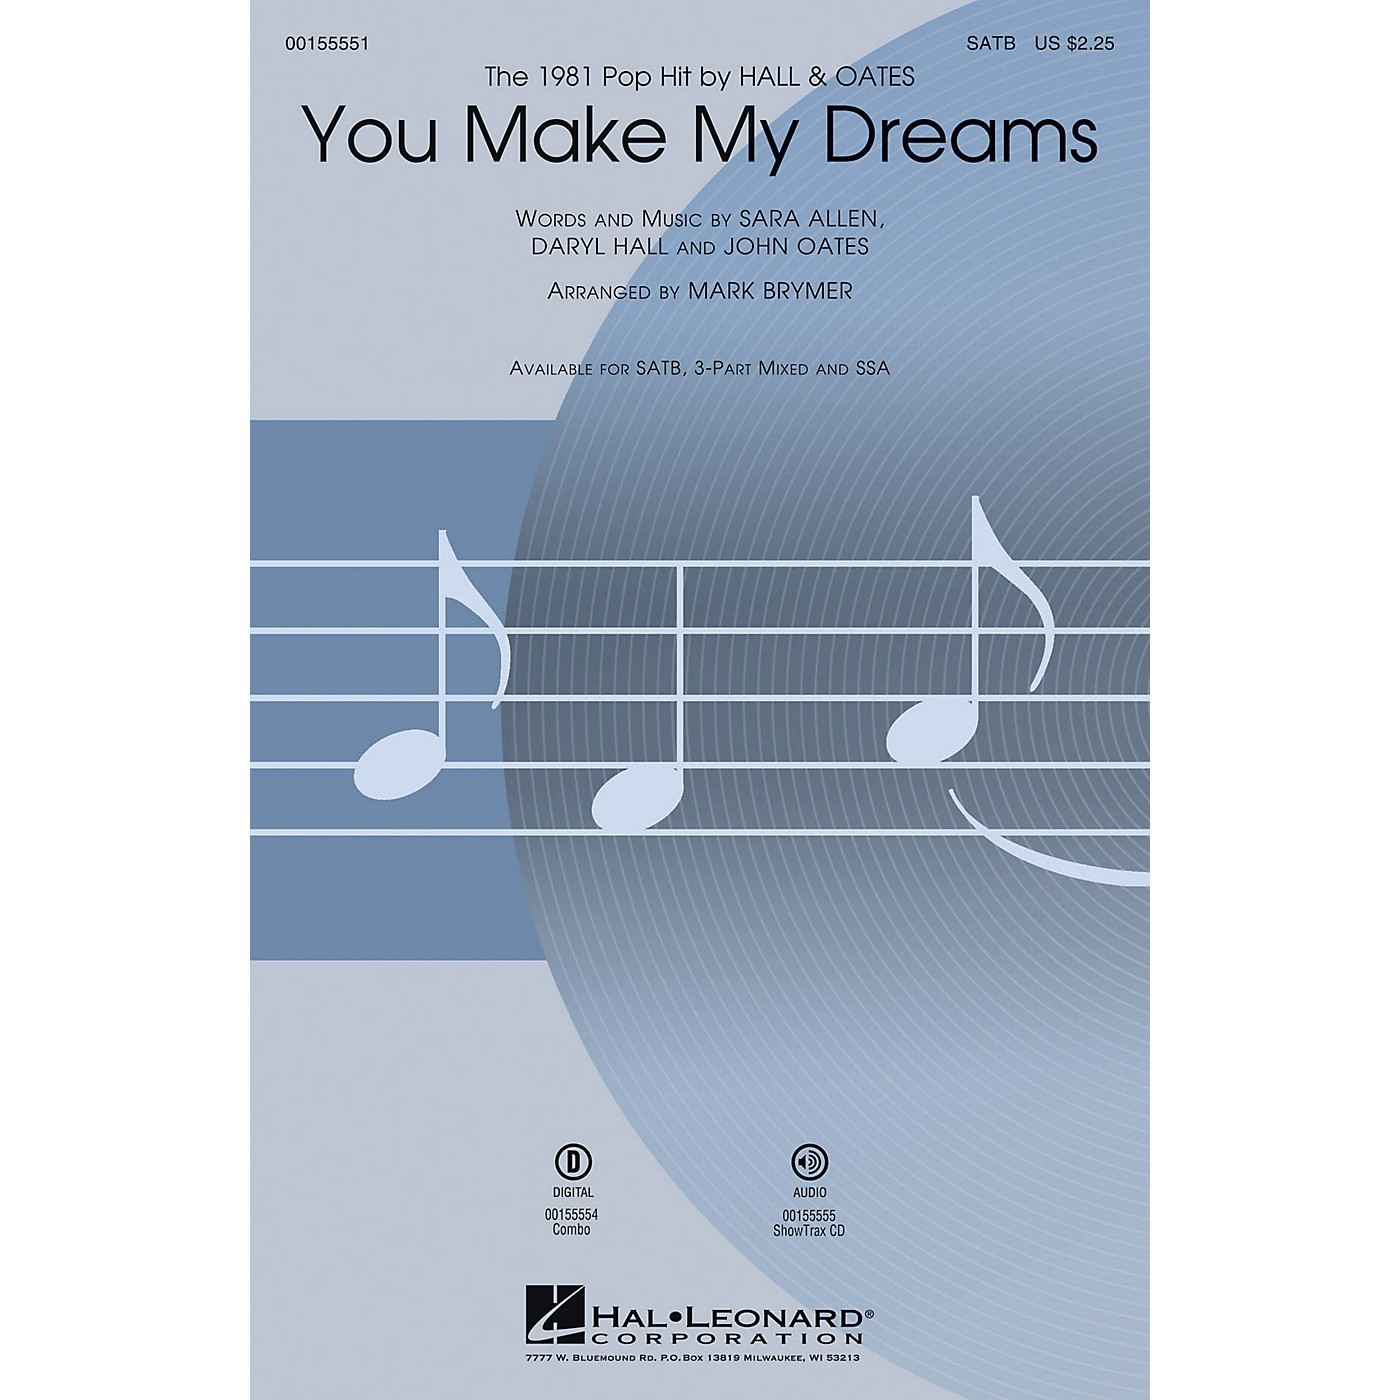 Hal Leonard You Make My Dreams 3-Part Mixed by Hall & Oates Arranged by Mark Brymer thumbnail